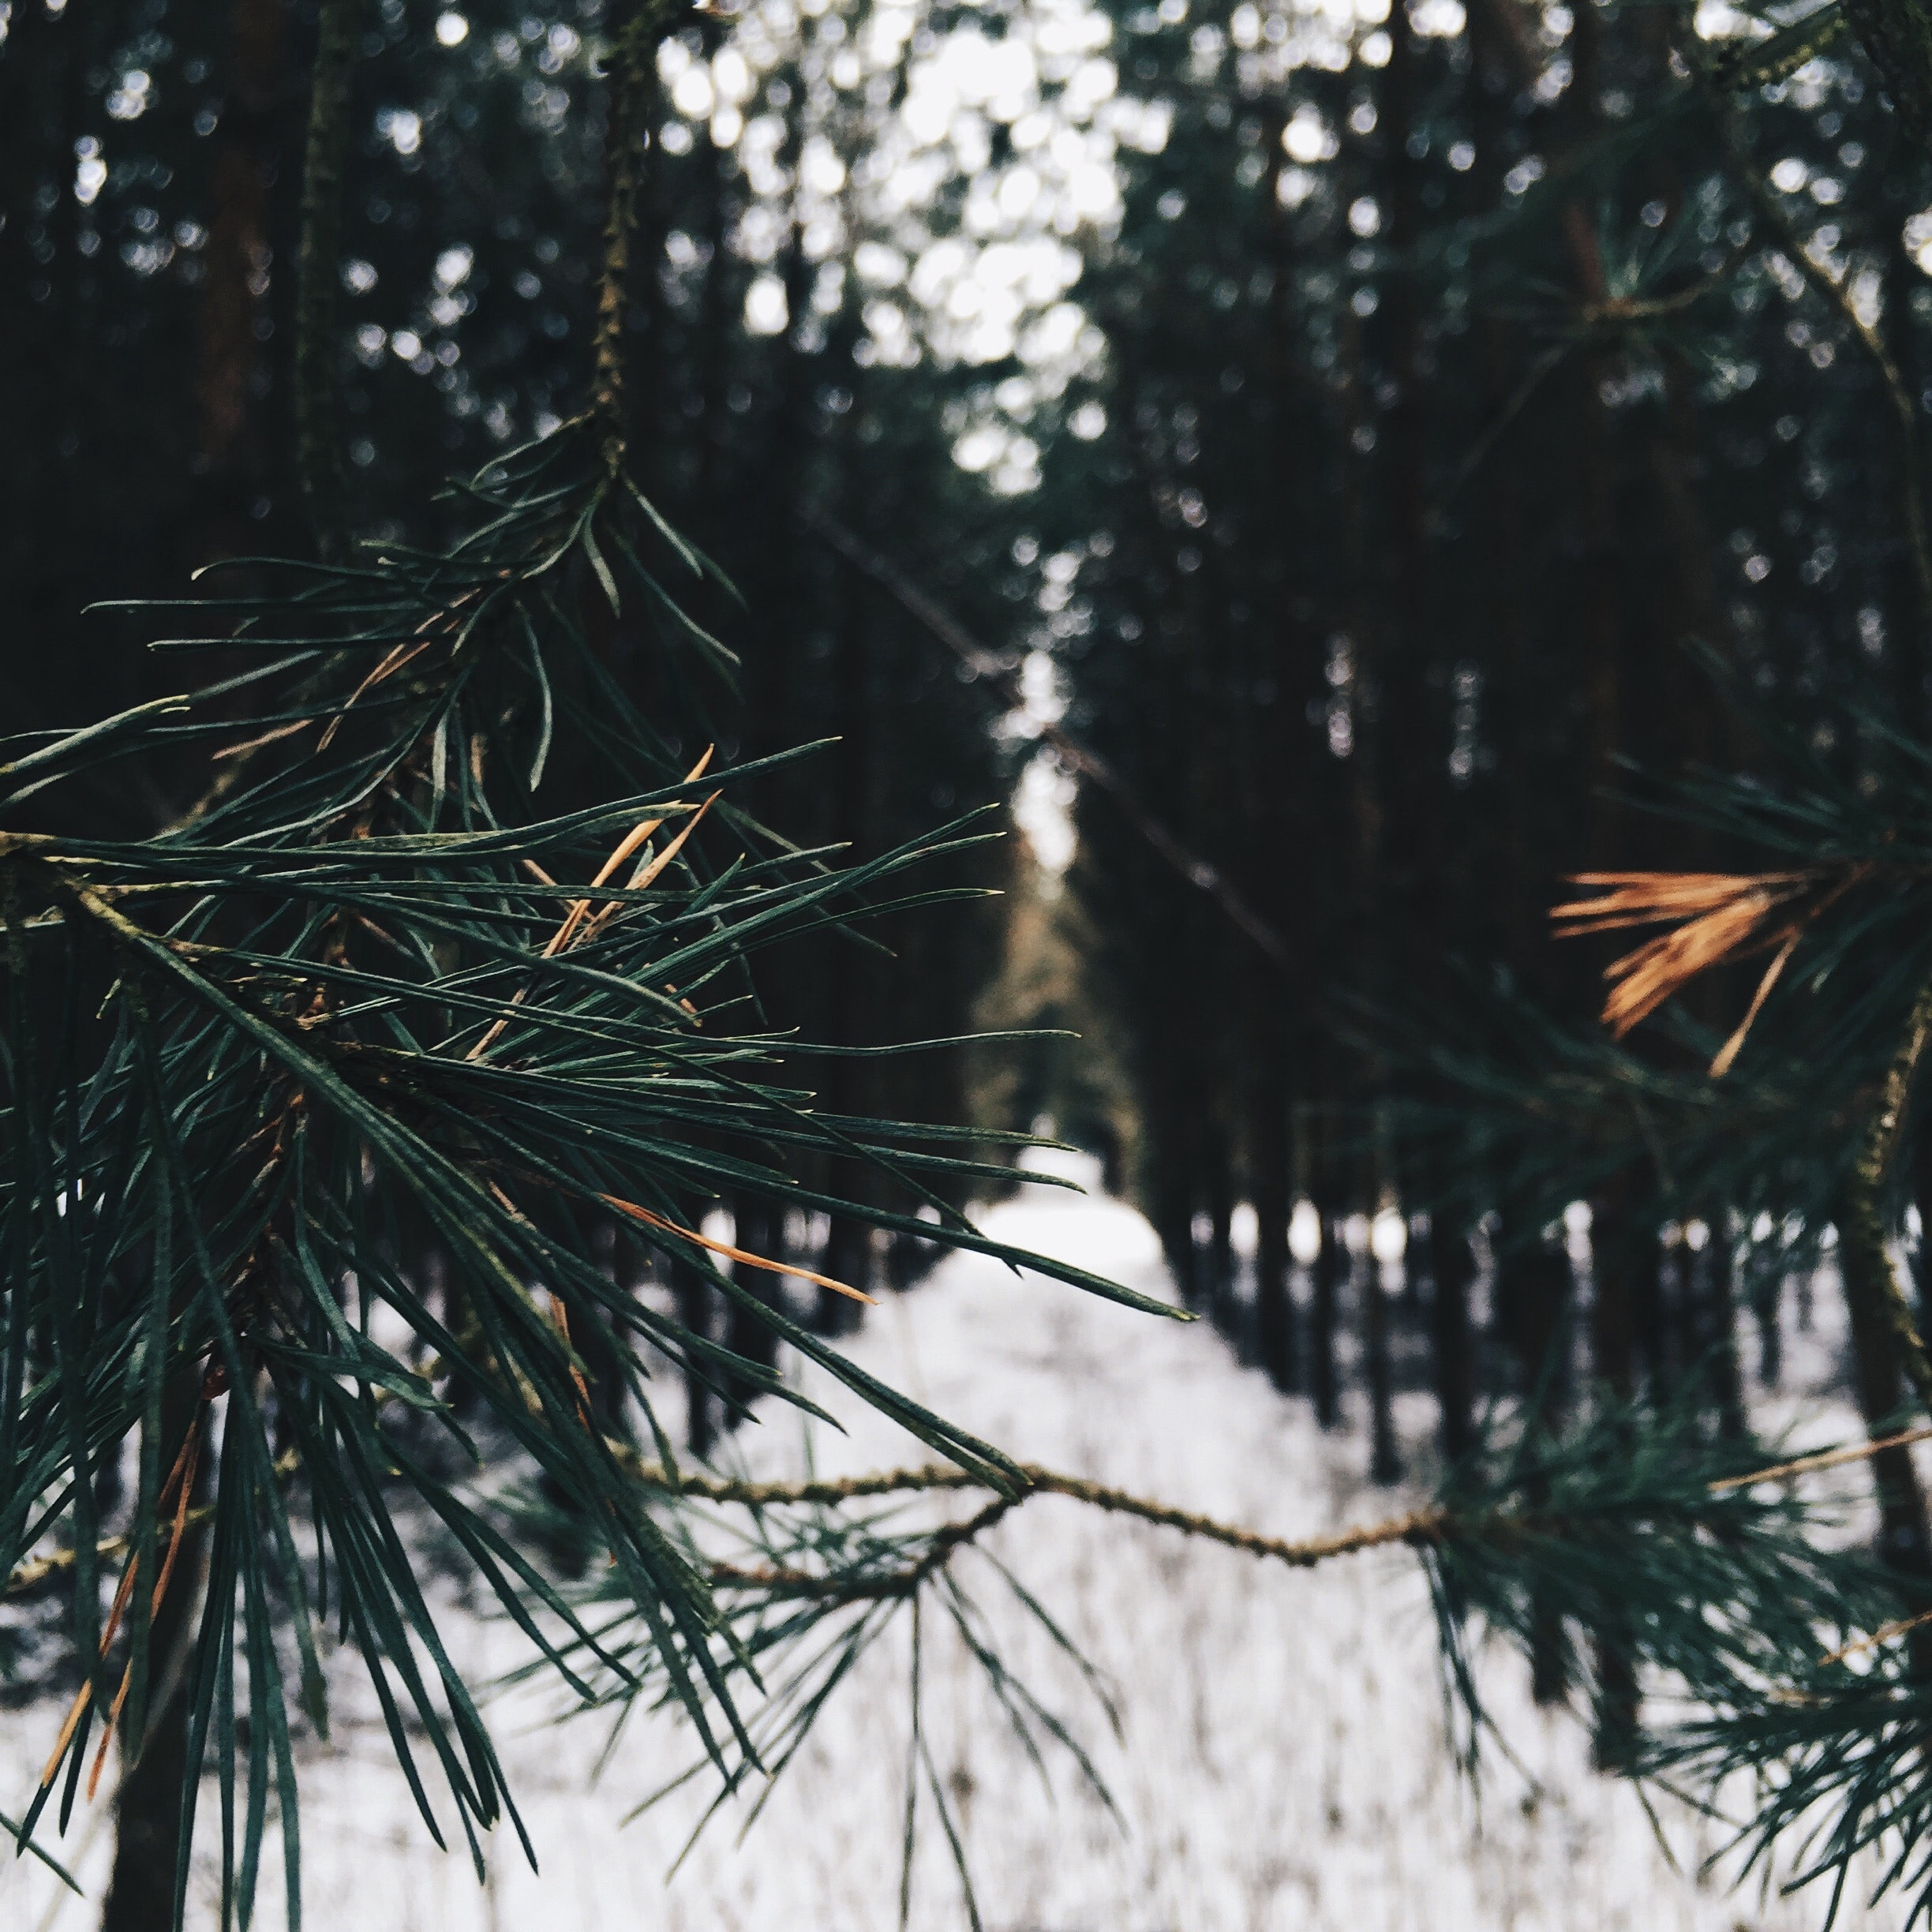 View of a snowy path in the evergreen pine forest through a branch of pine needles